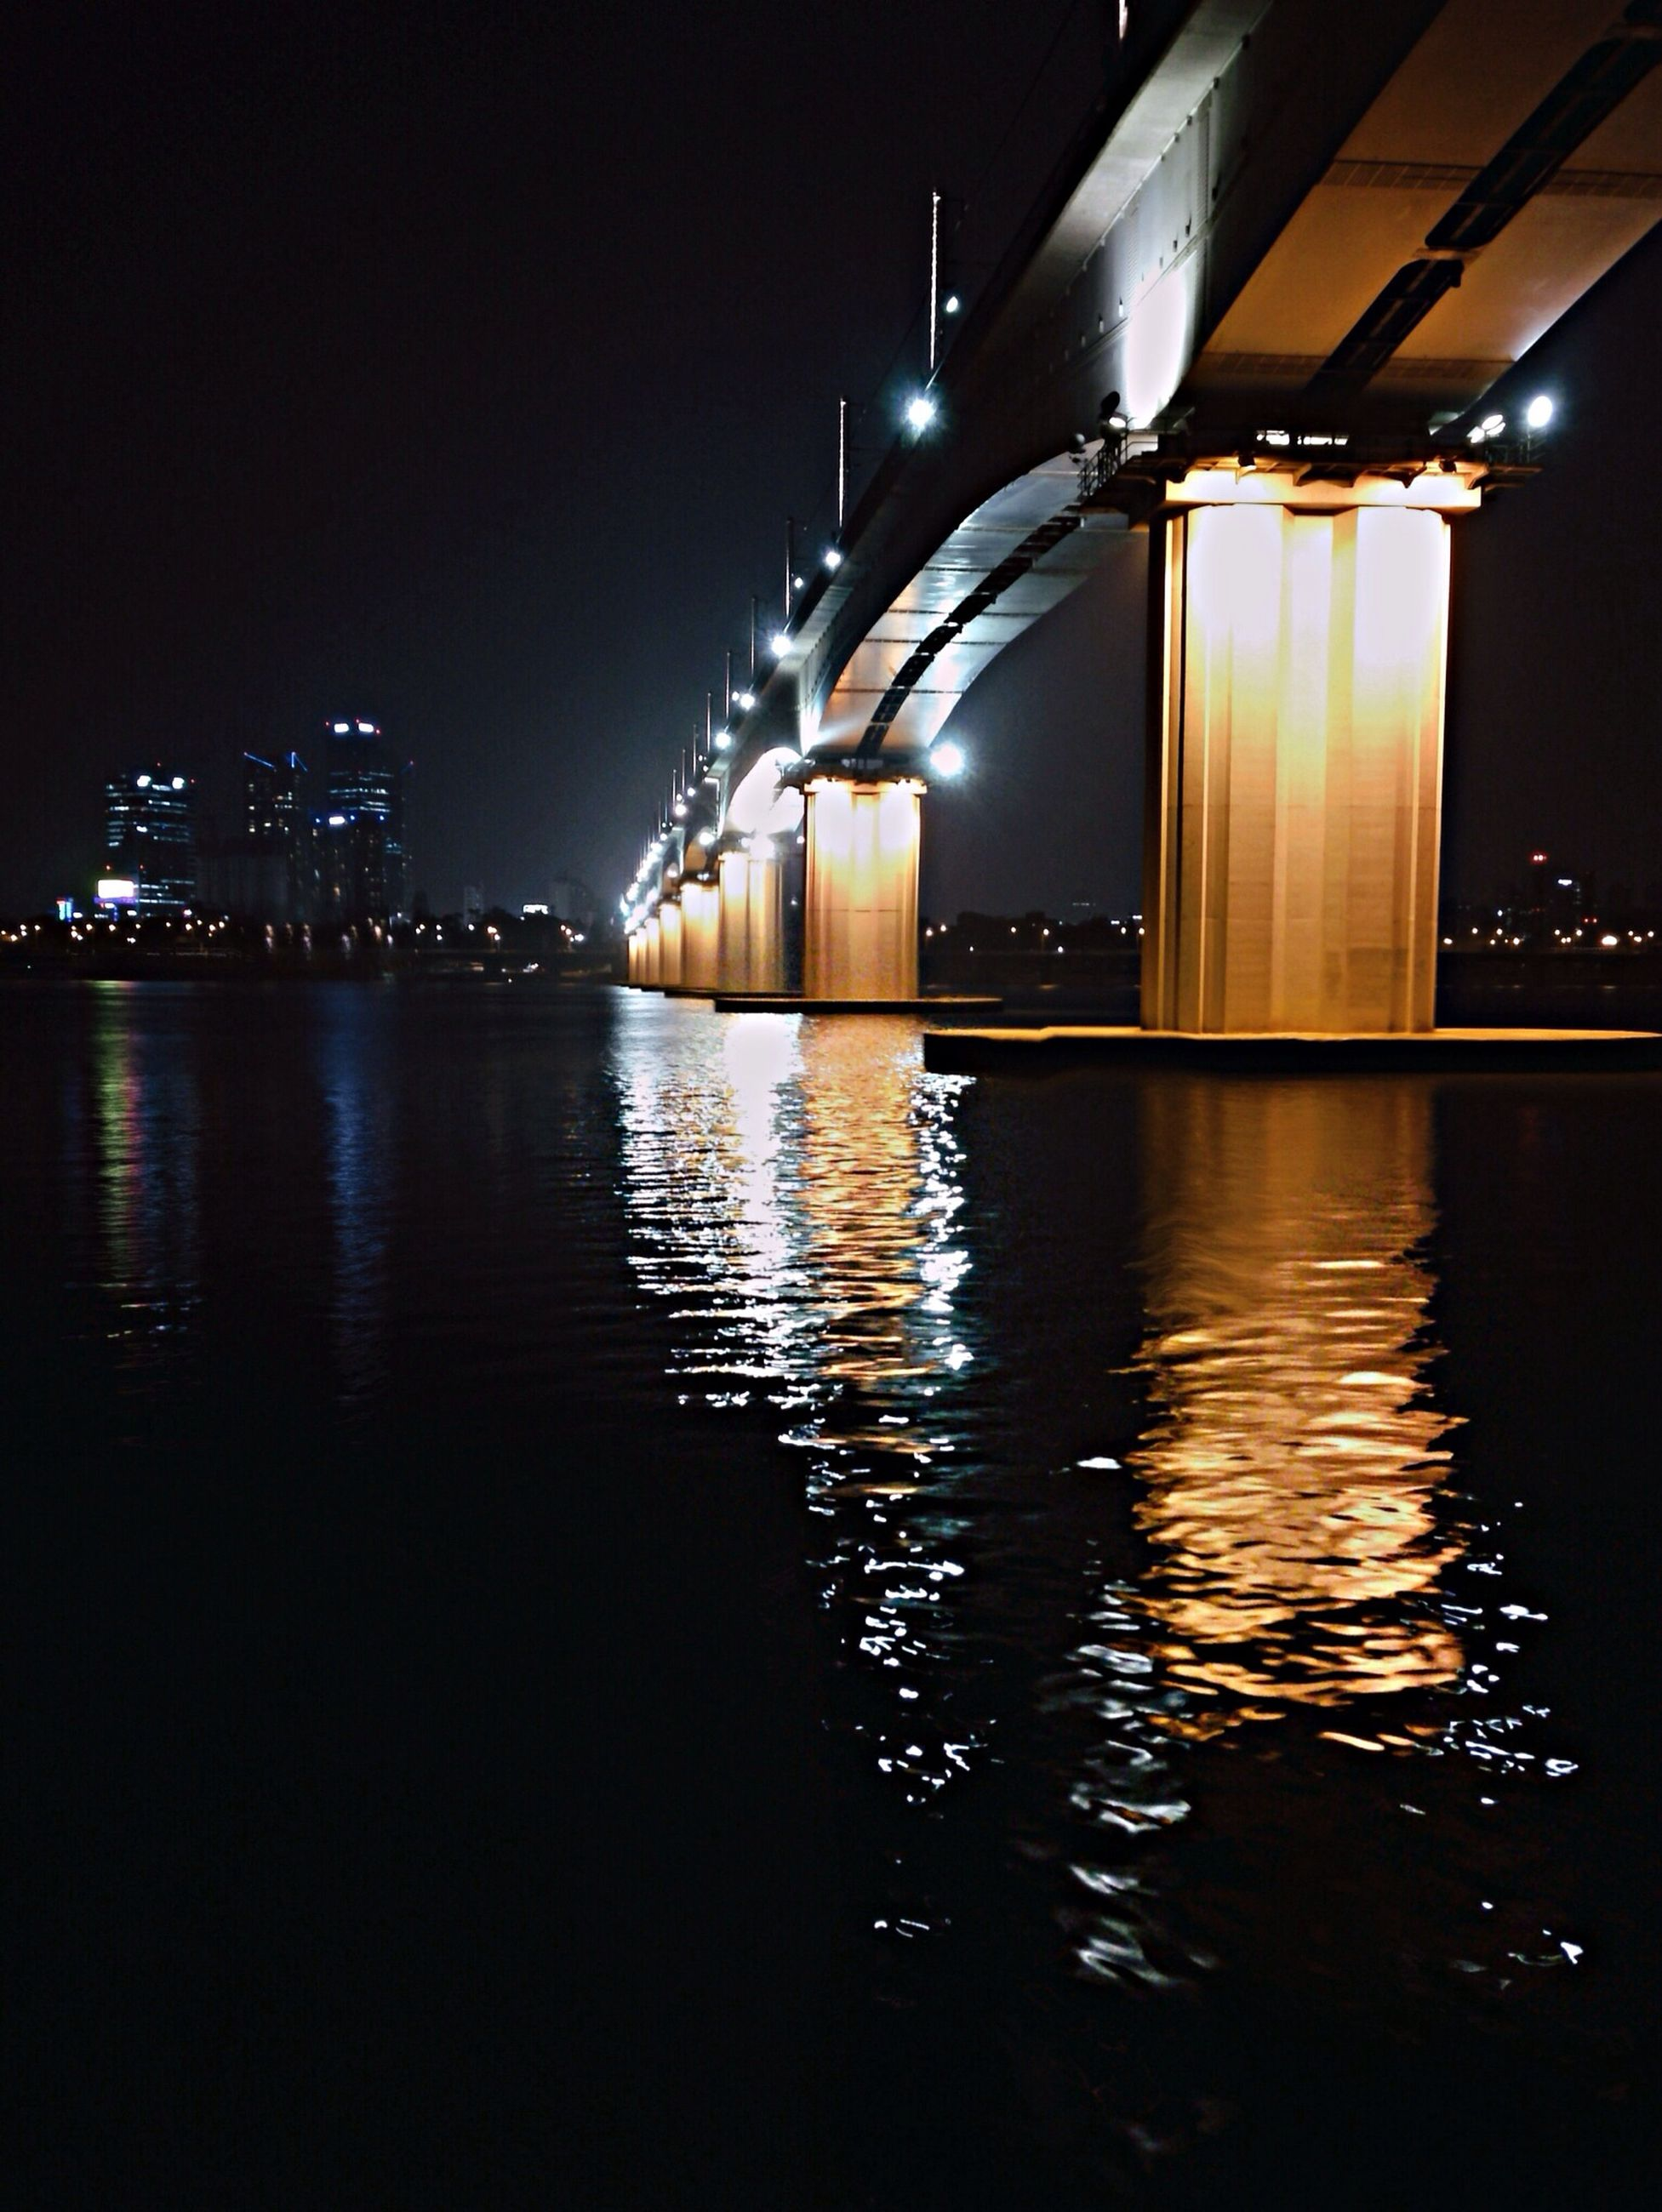 illuminated, night, water, architecture, built structure, reflection, waterfront, building exterior, river, city, bridge - man made structure, dark, sky, no people, connection, rippled, building, outdoors, lighting equipment, tranquility